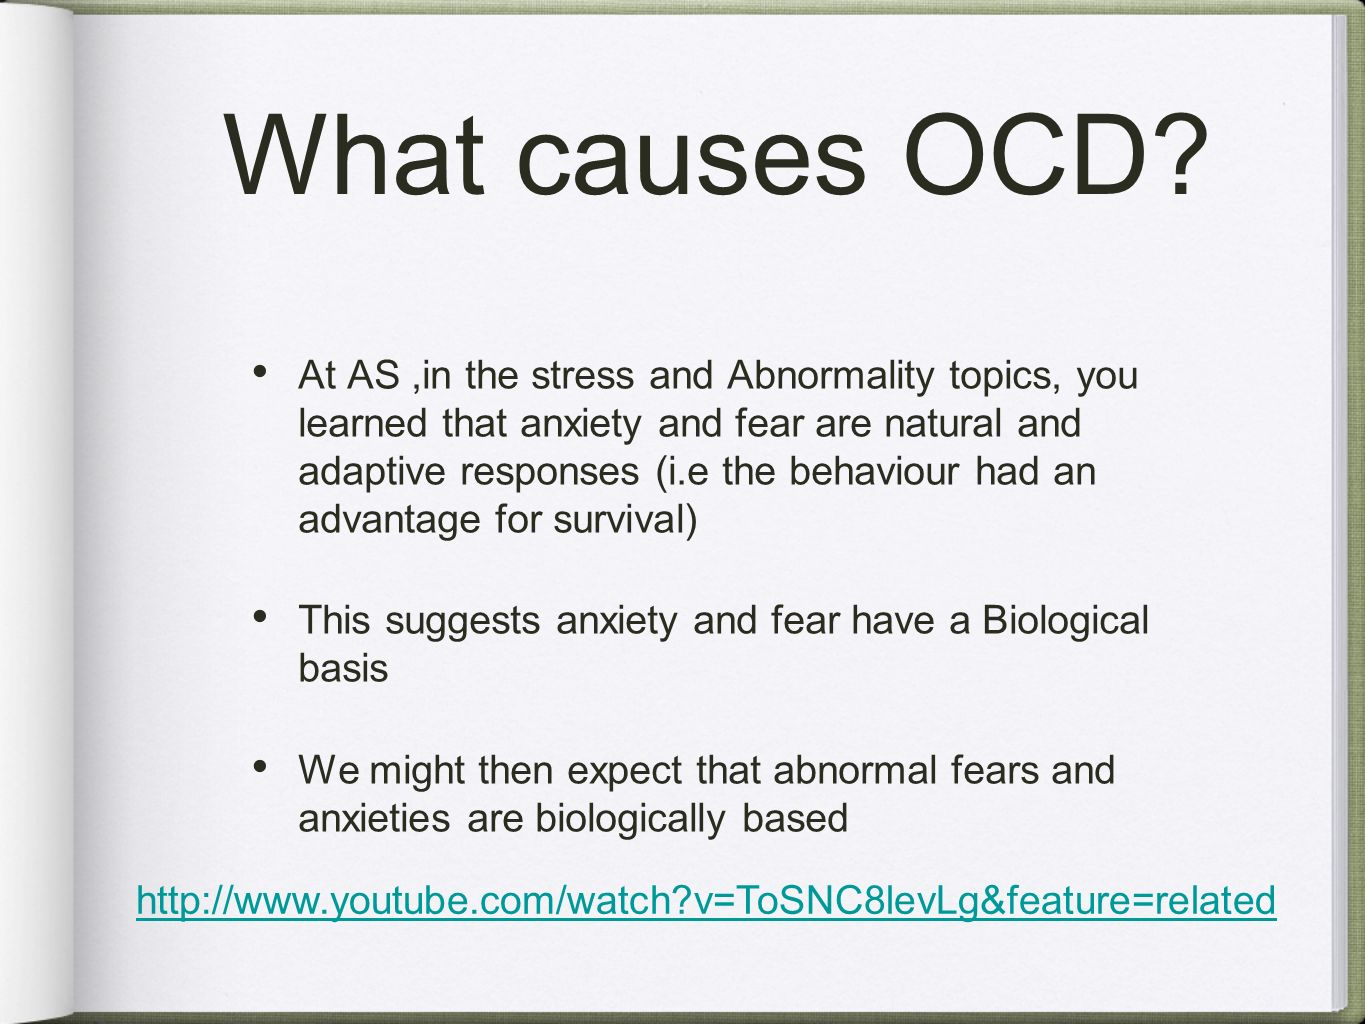 causes of ocd genetics or environment Current scientific thinking holds that ocd results from a confluence of factors--a biological predisposition, environmental factors including experiences and attitudes acquired in childhood.